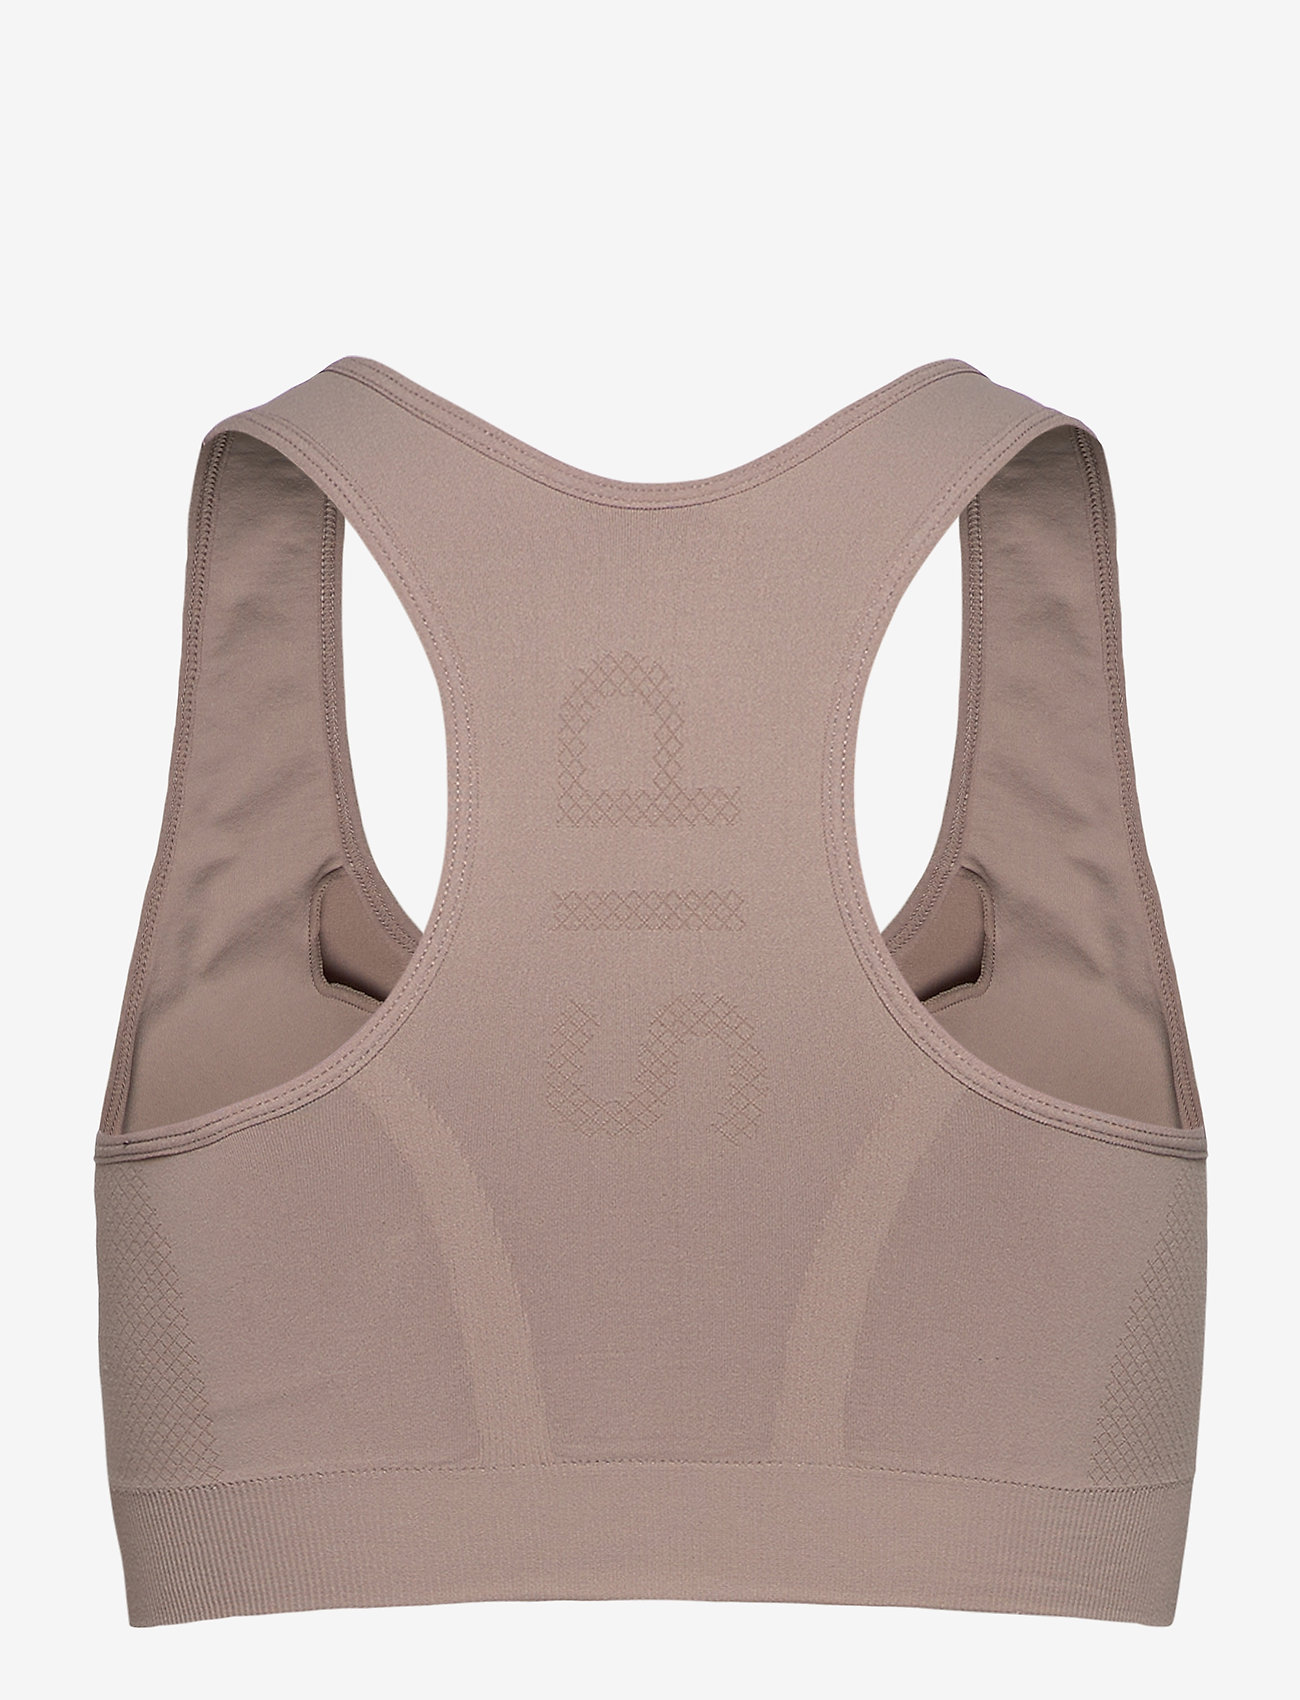 Stay In Place - Rib Seamless Bra - sport-bh: høy - oat latte - 1